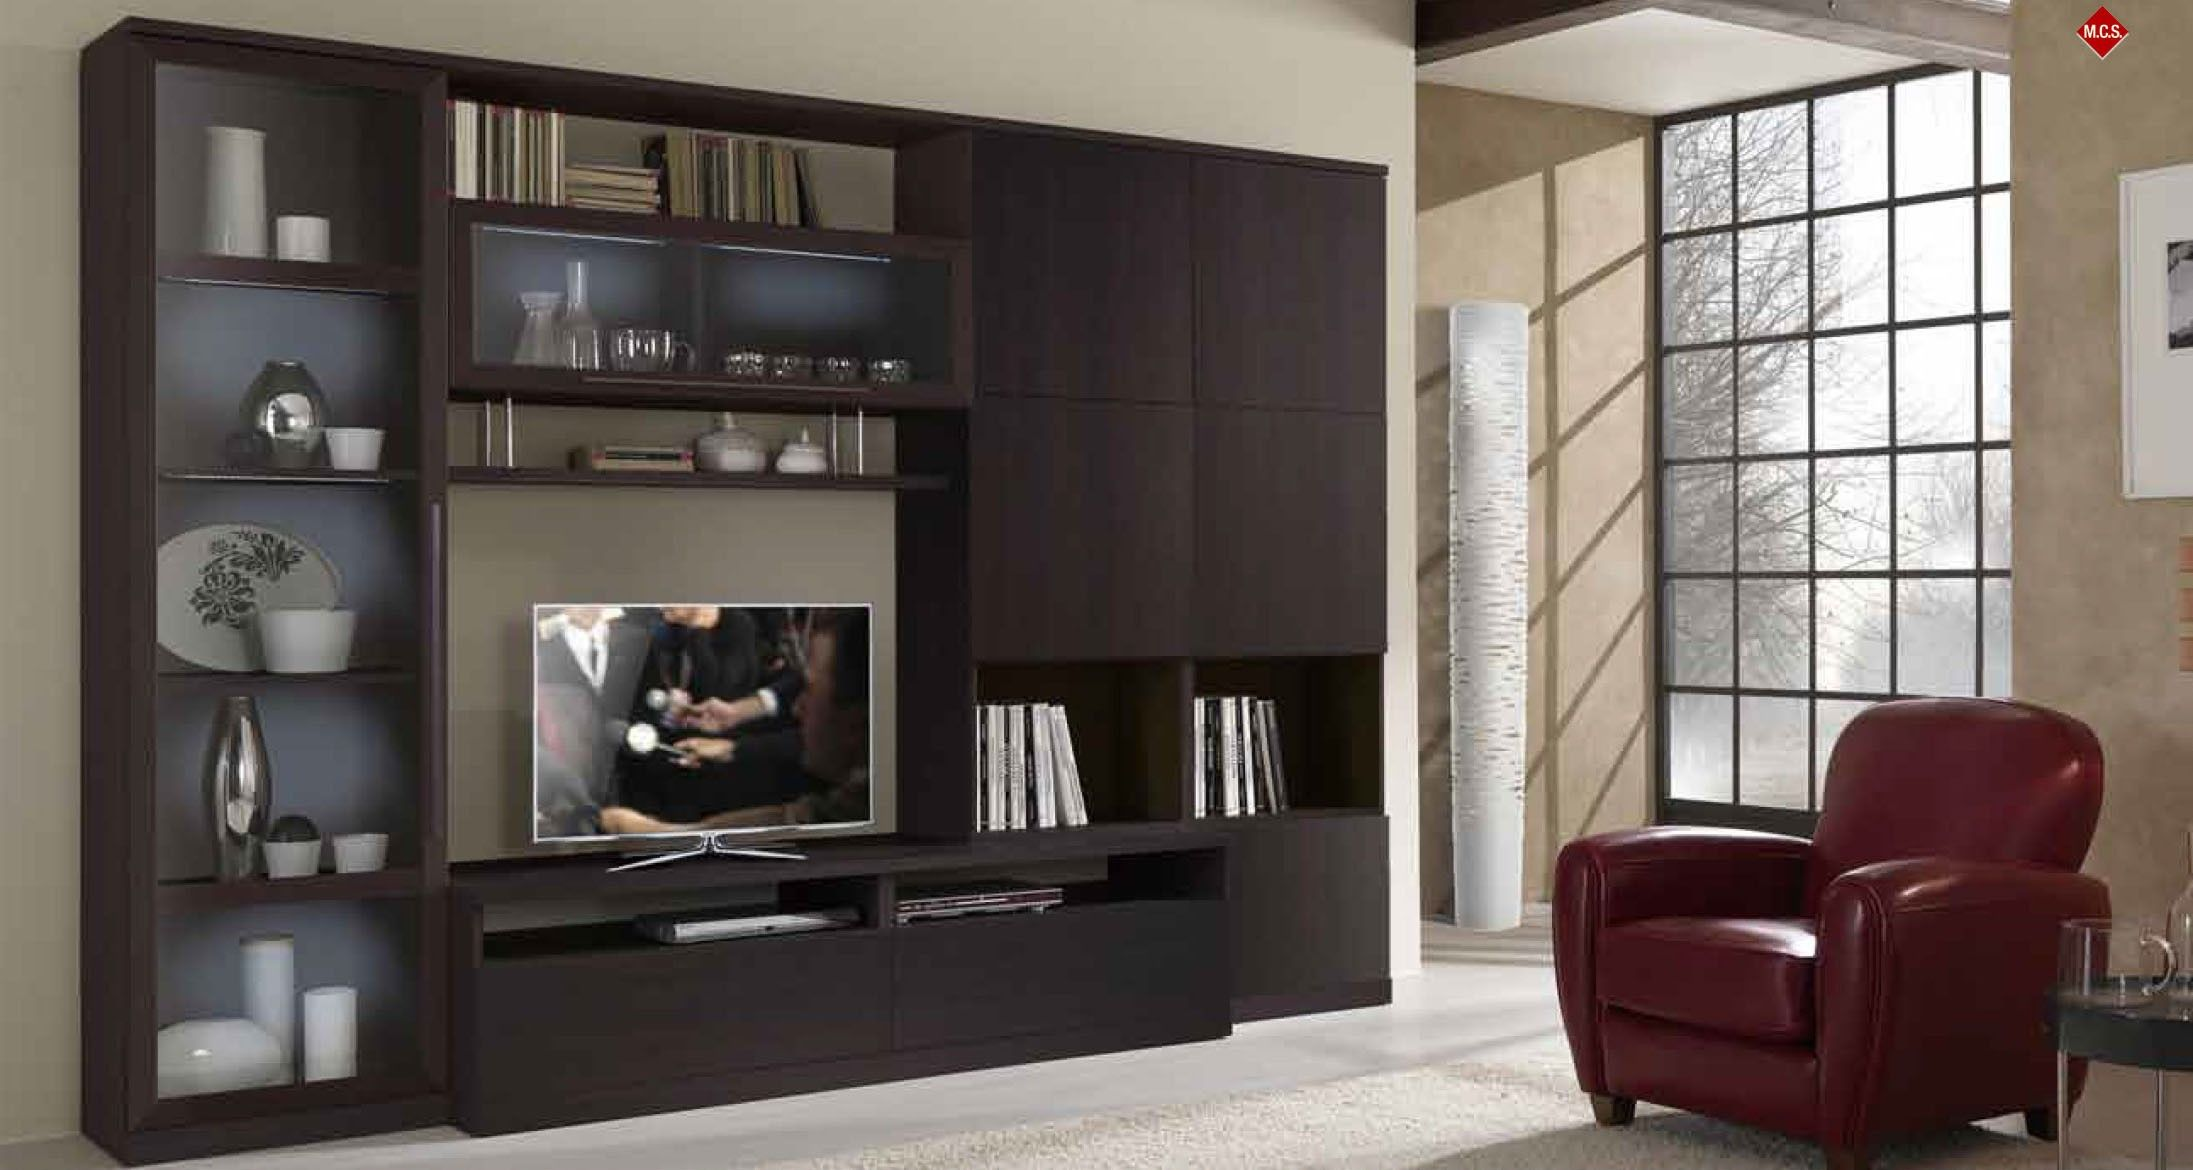 living room cabinets with glass doors. tv unit ideas wall mounted designs design for living room  cabinet showcase hall cupboard Home Built In Bar and Magnificent Living Room